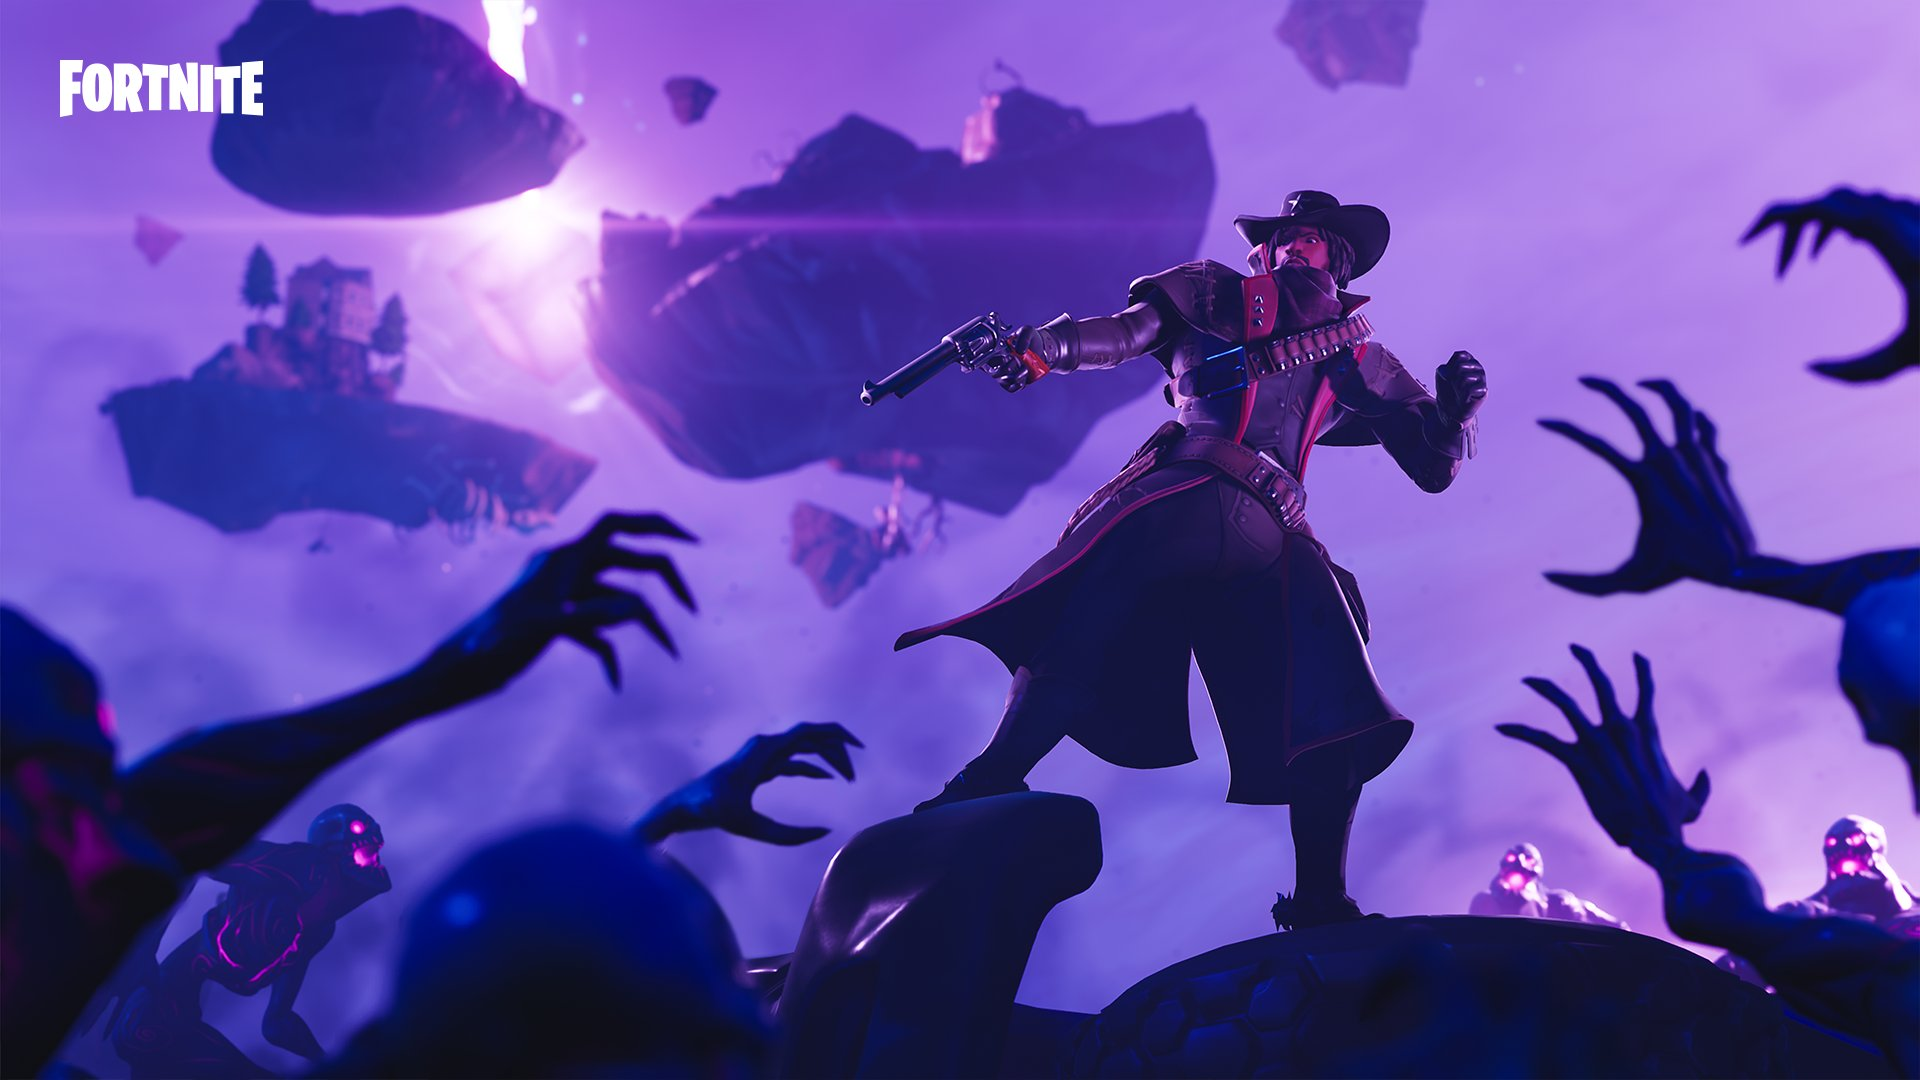 Ios 7 Iphone Wallpaper: Fortnite For IOS Updated With 'Fortnitemares' Halloween